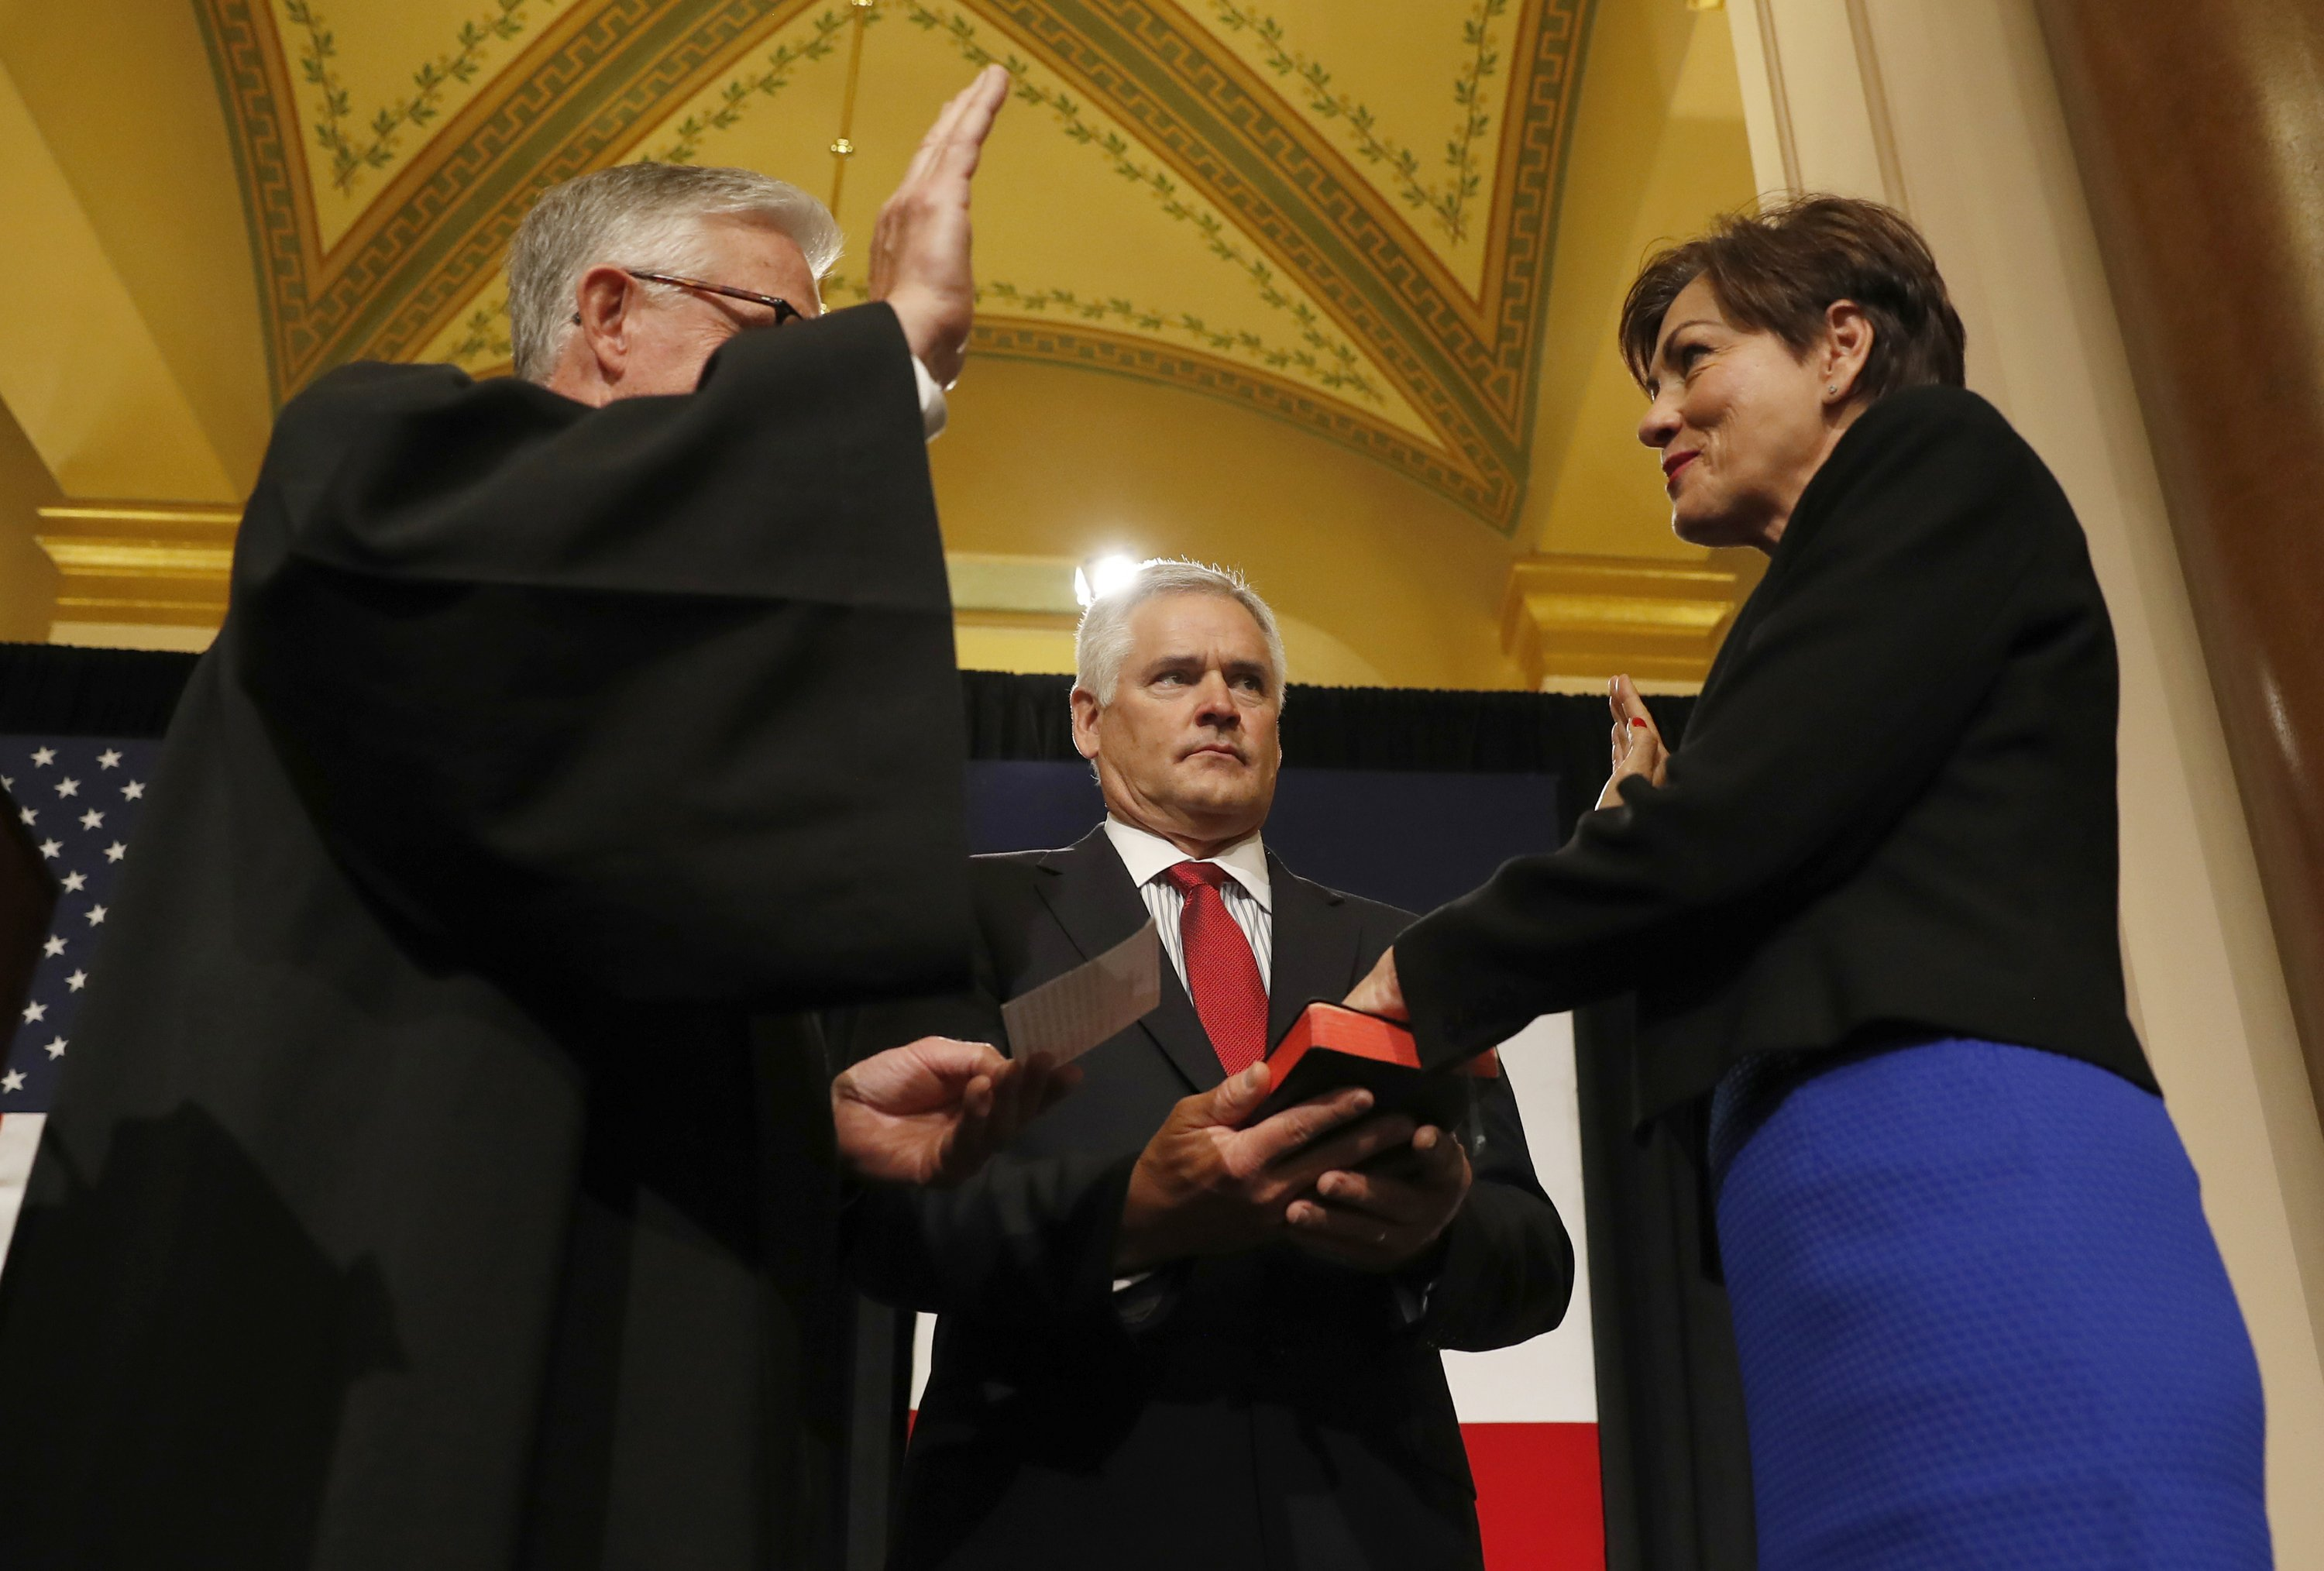 Kim Reynolds sworn in as Iowa's 1st female governor